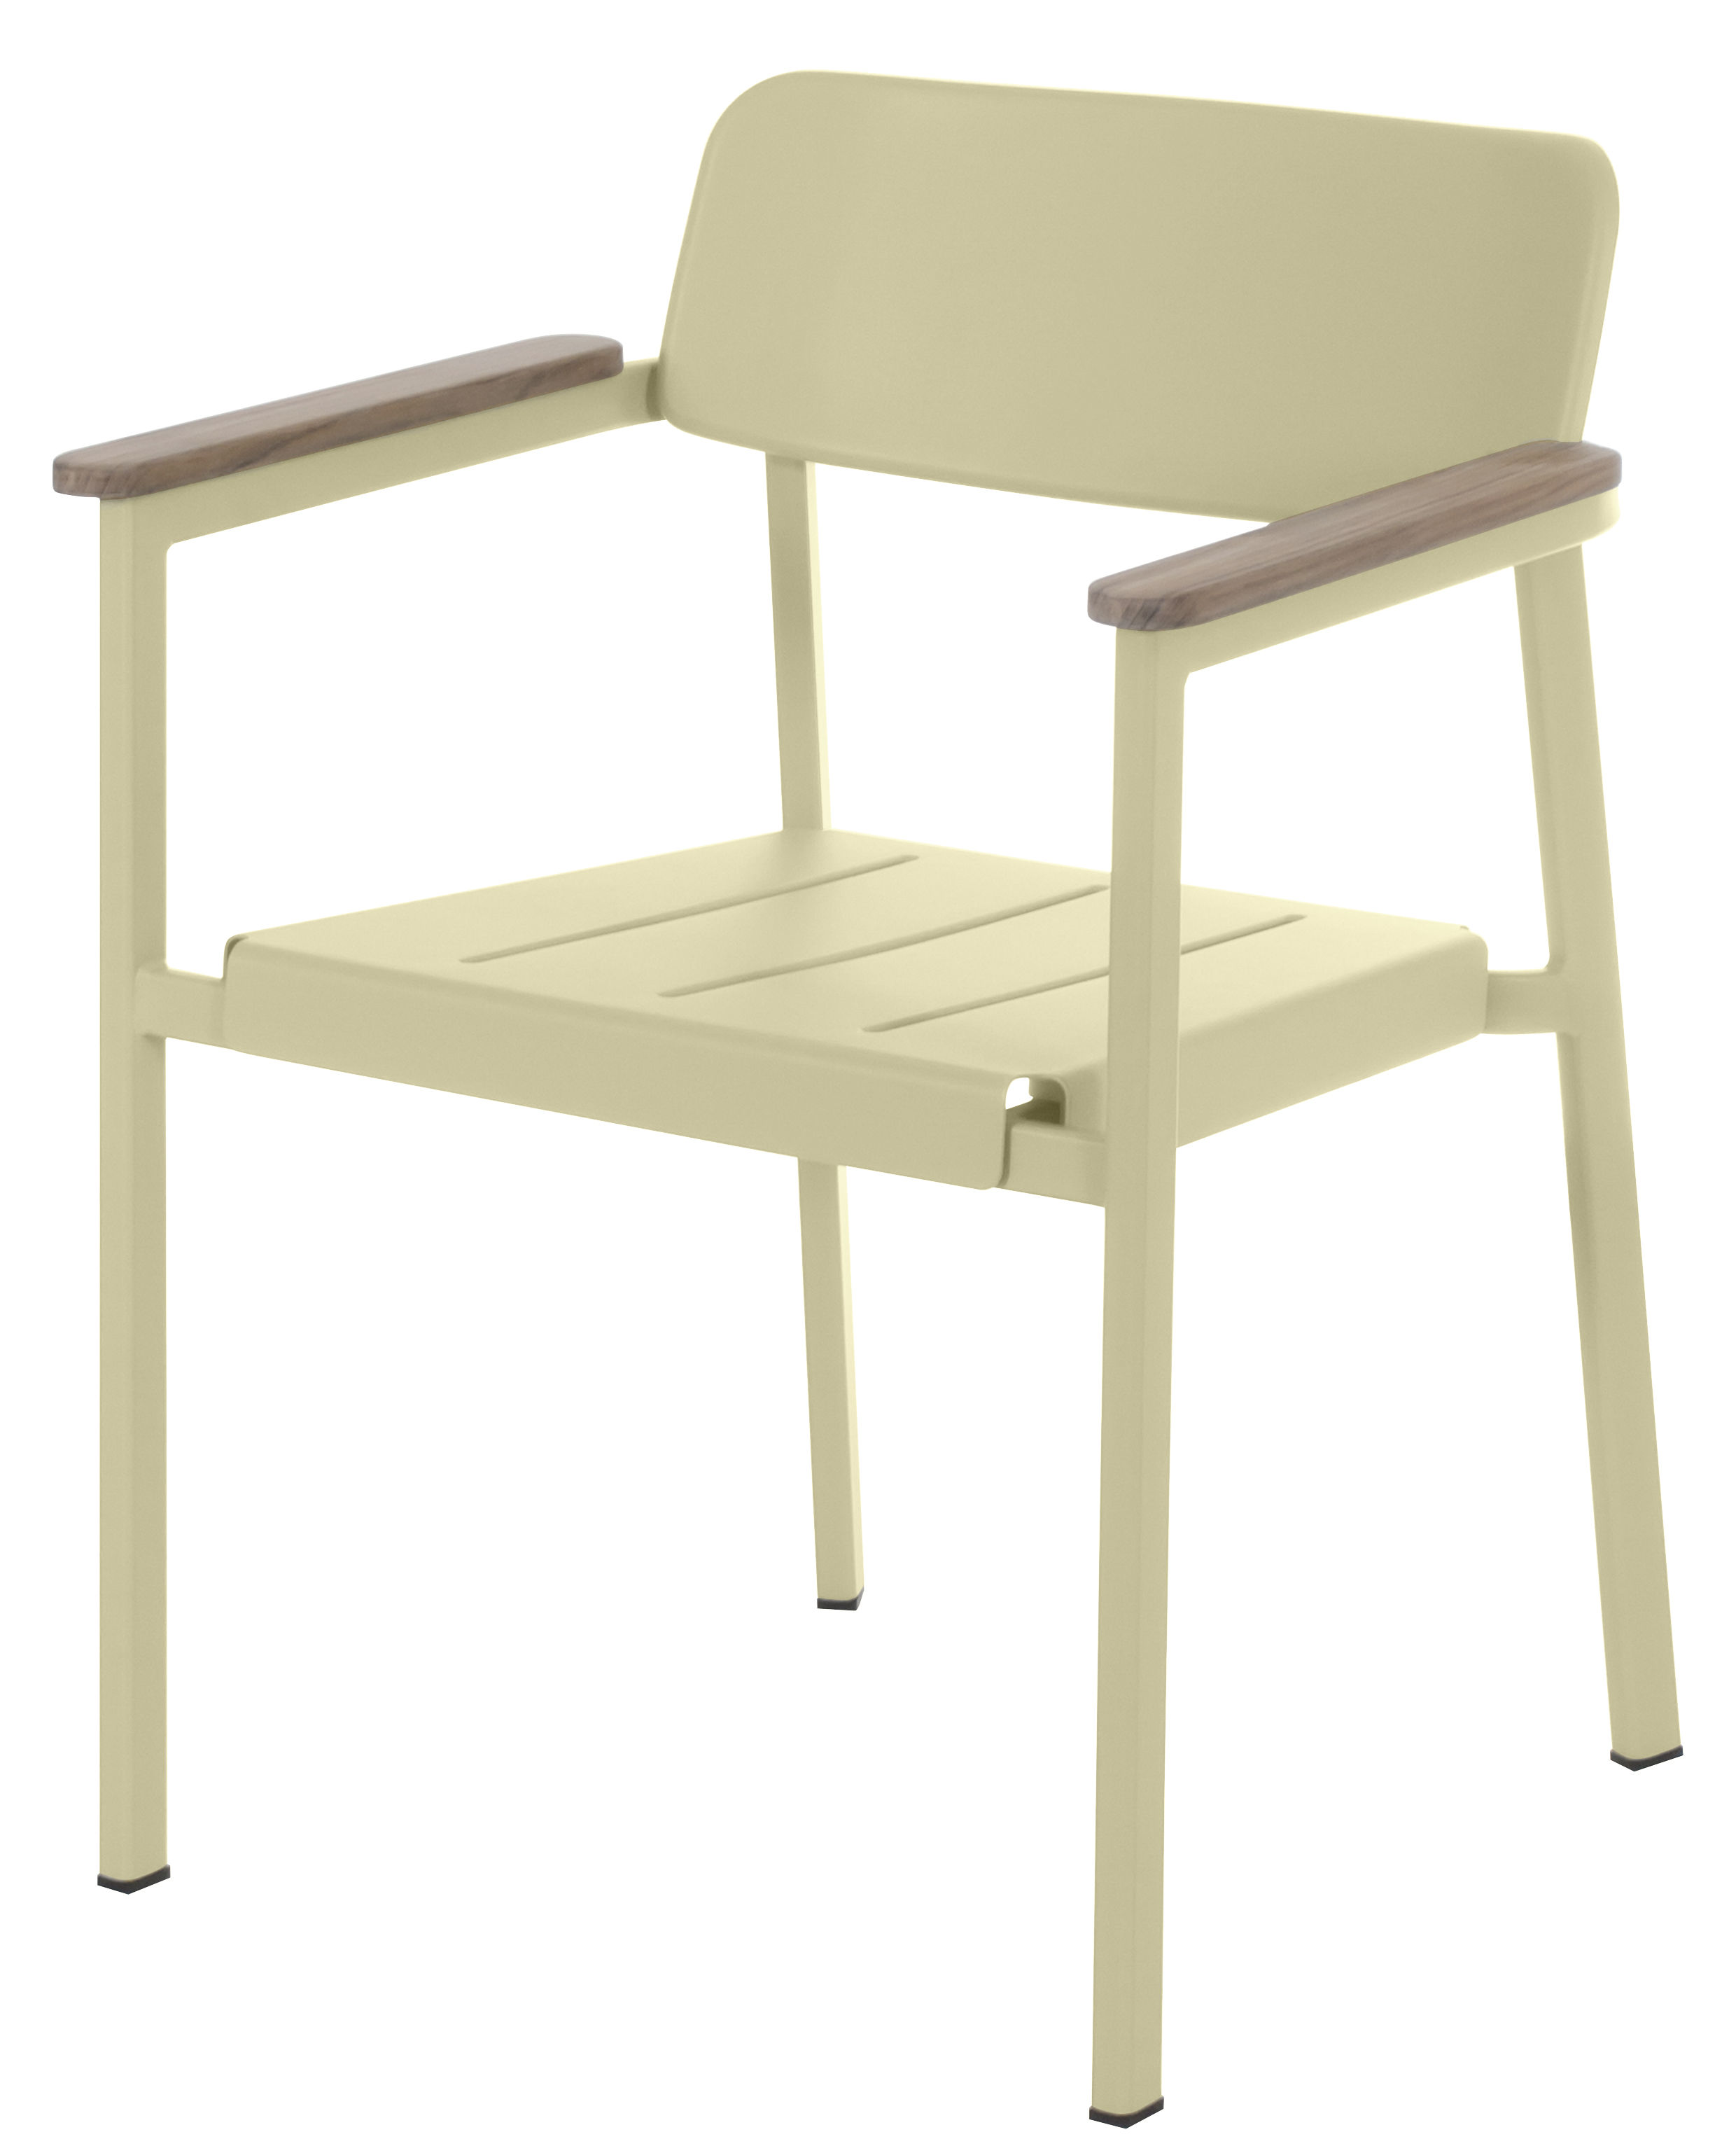 Amazing photo of Shine Stackable armchair Metal & wood armrests Turtledove by Emu with #58522E color and 2480x3055 pixels